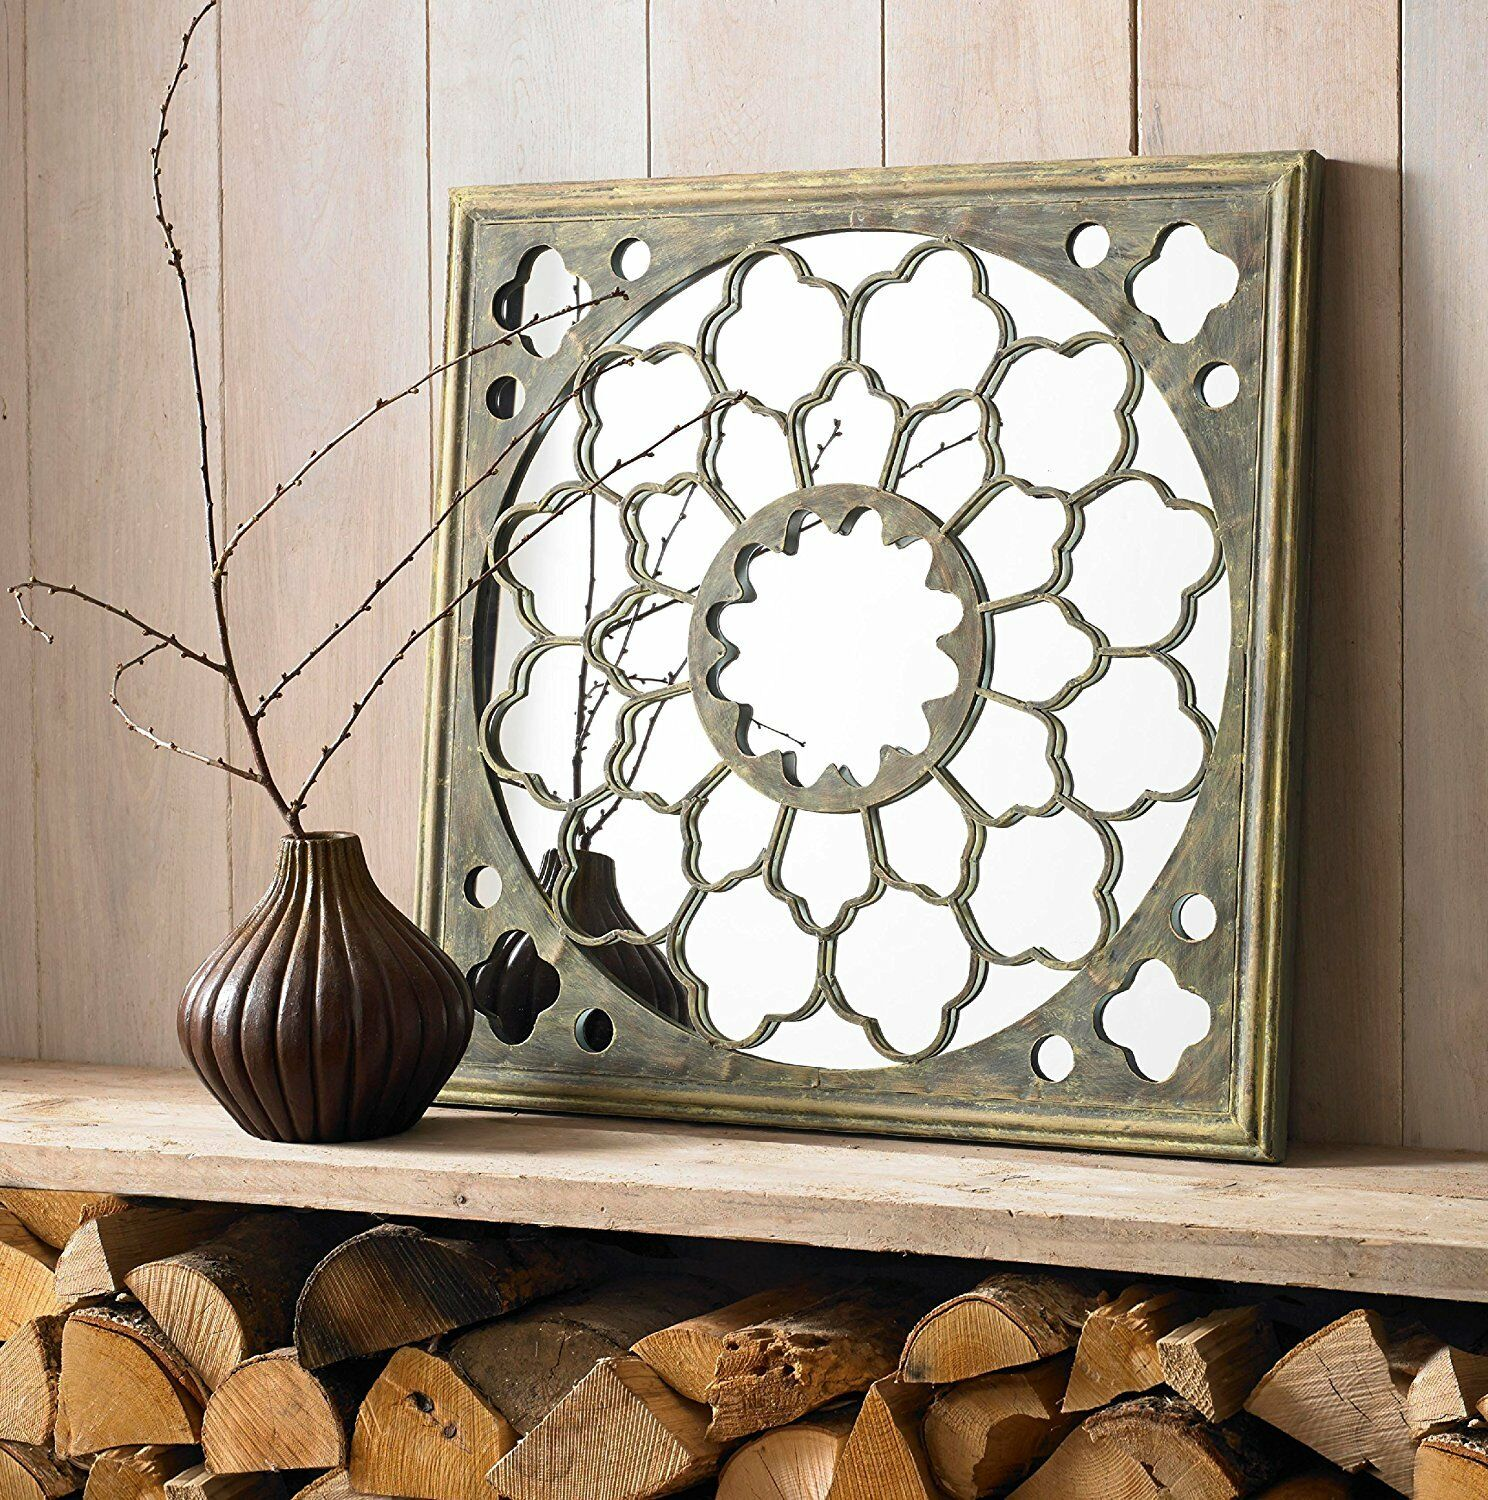 Wall Art In Mirror Frame : Home decoration mirror metal framed fretwork wall art